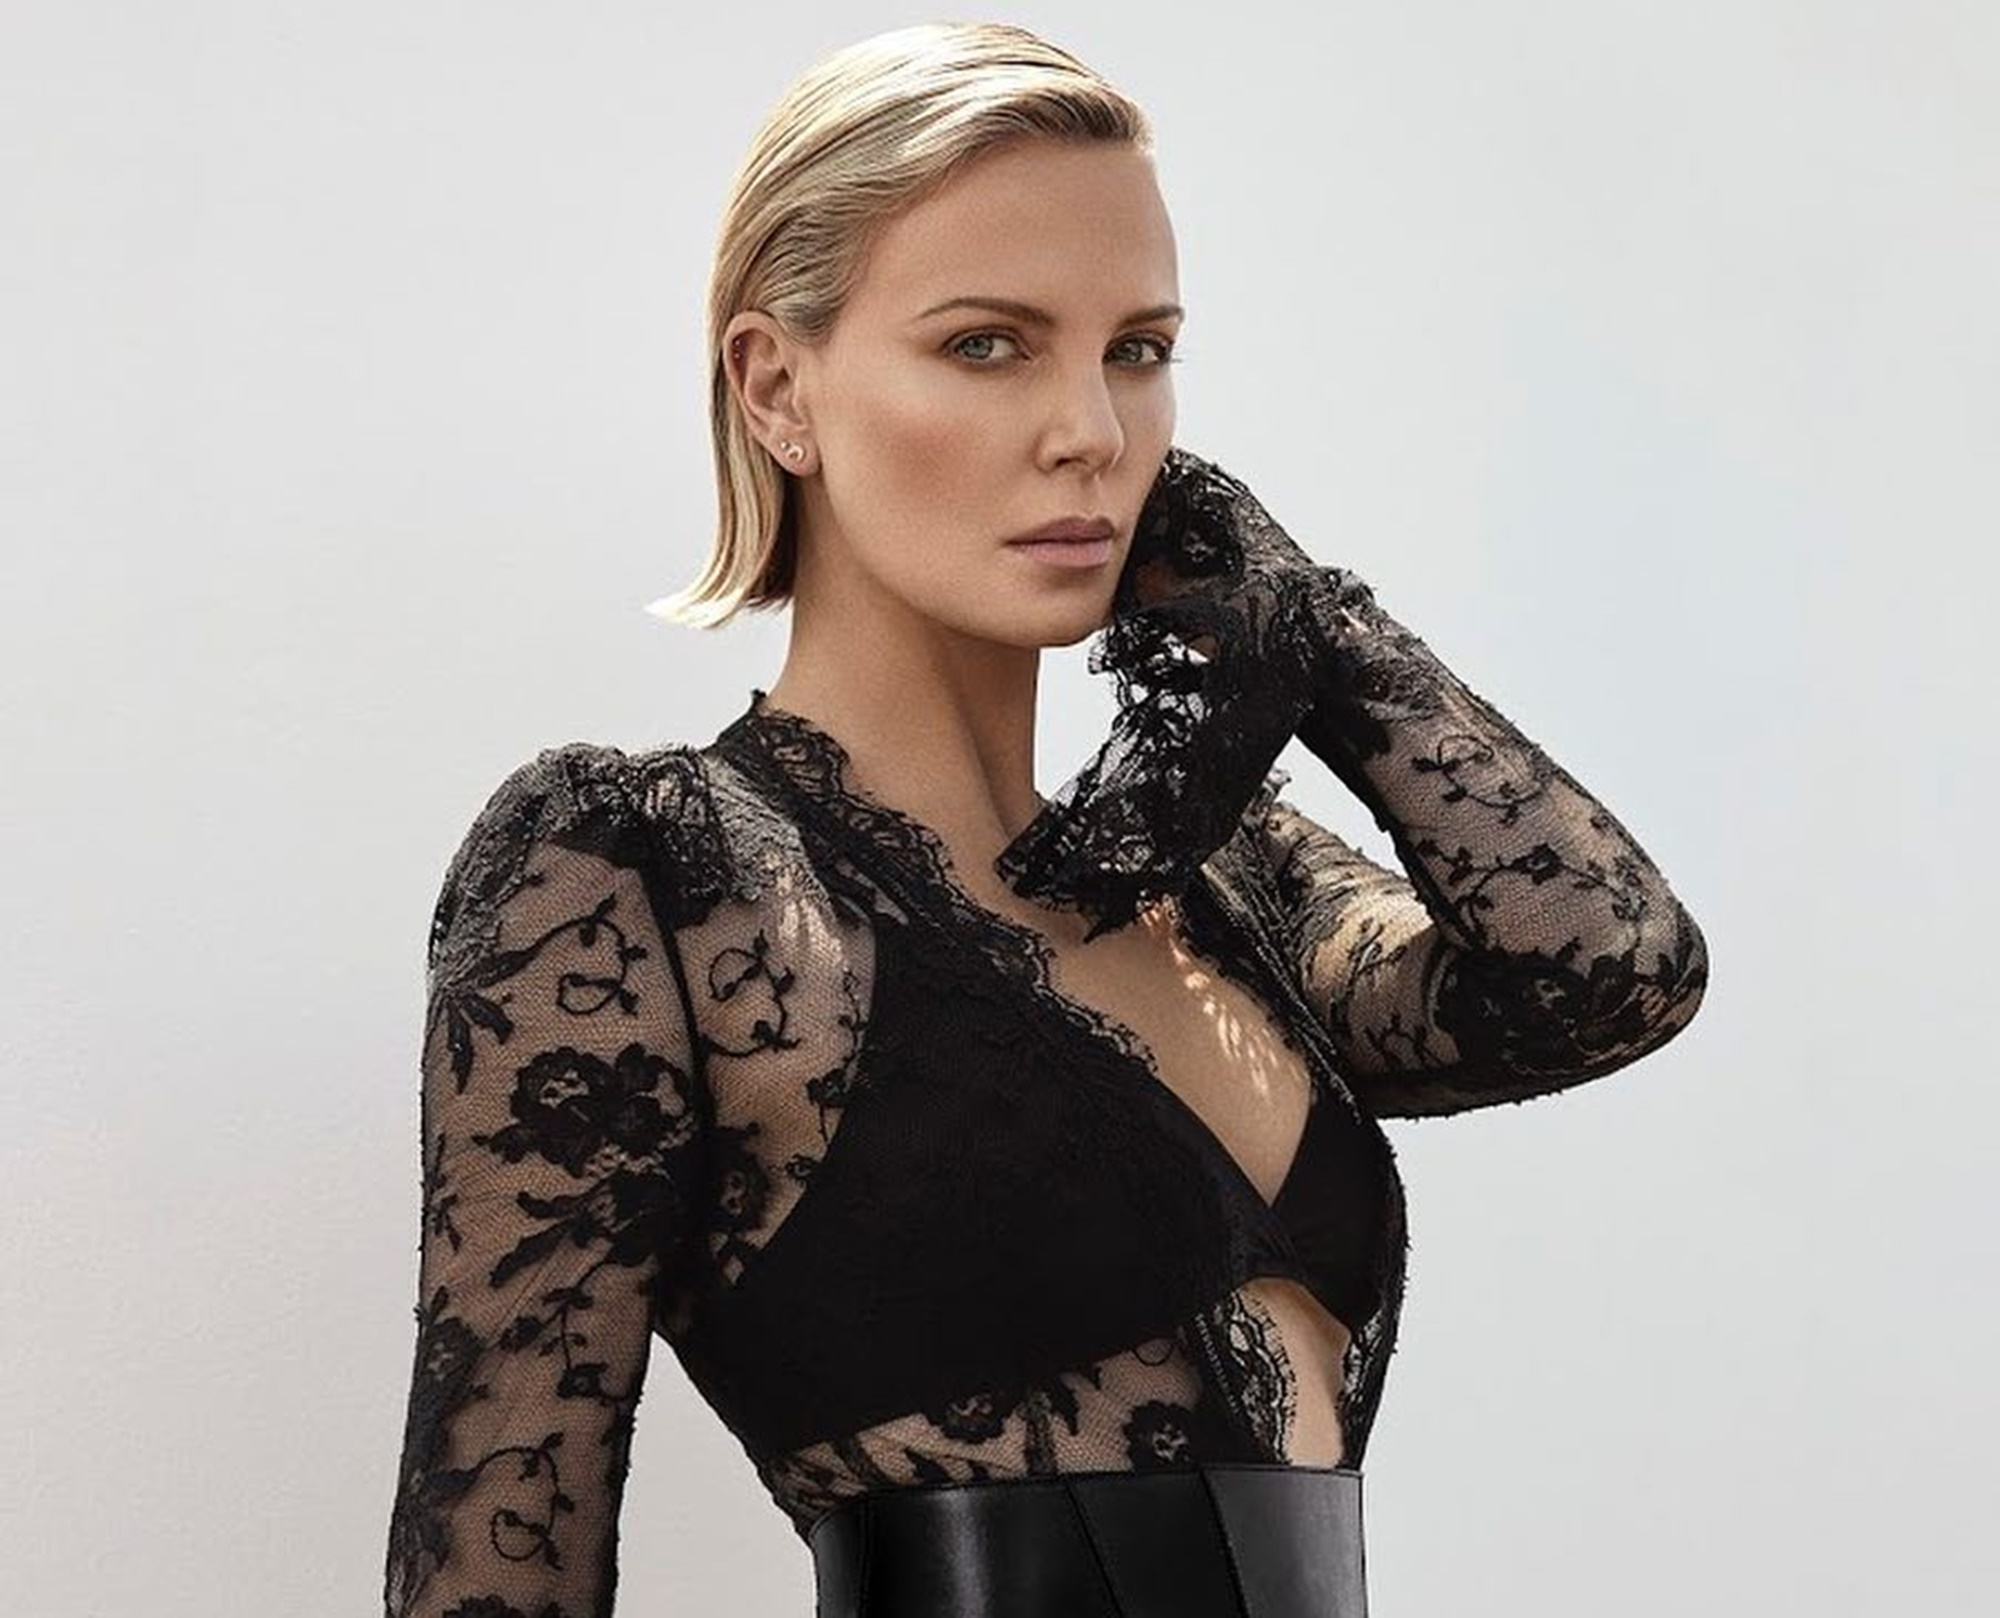 charlize-theron-reveals-that-daughter-jackson-is-transgender-and-here-is-how-she-handled-the-news